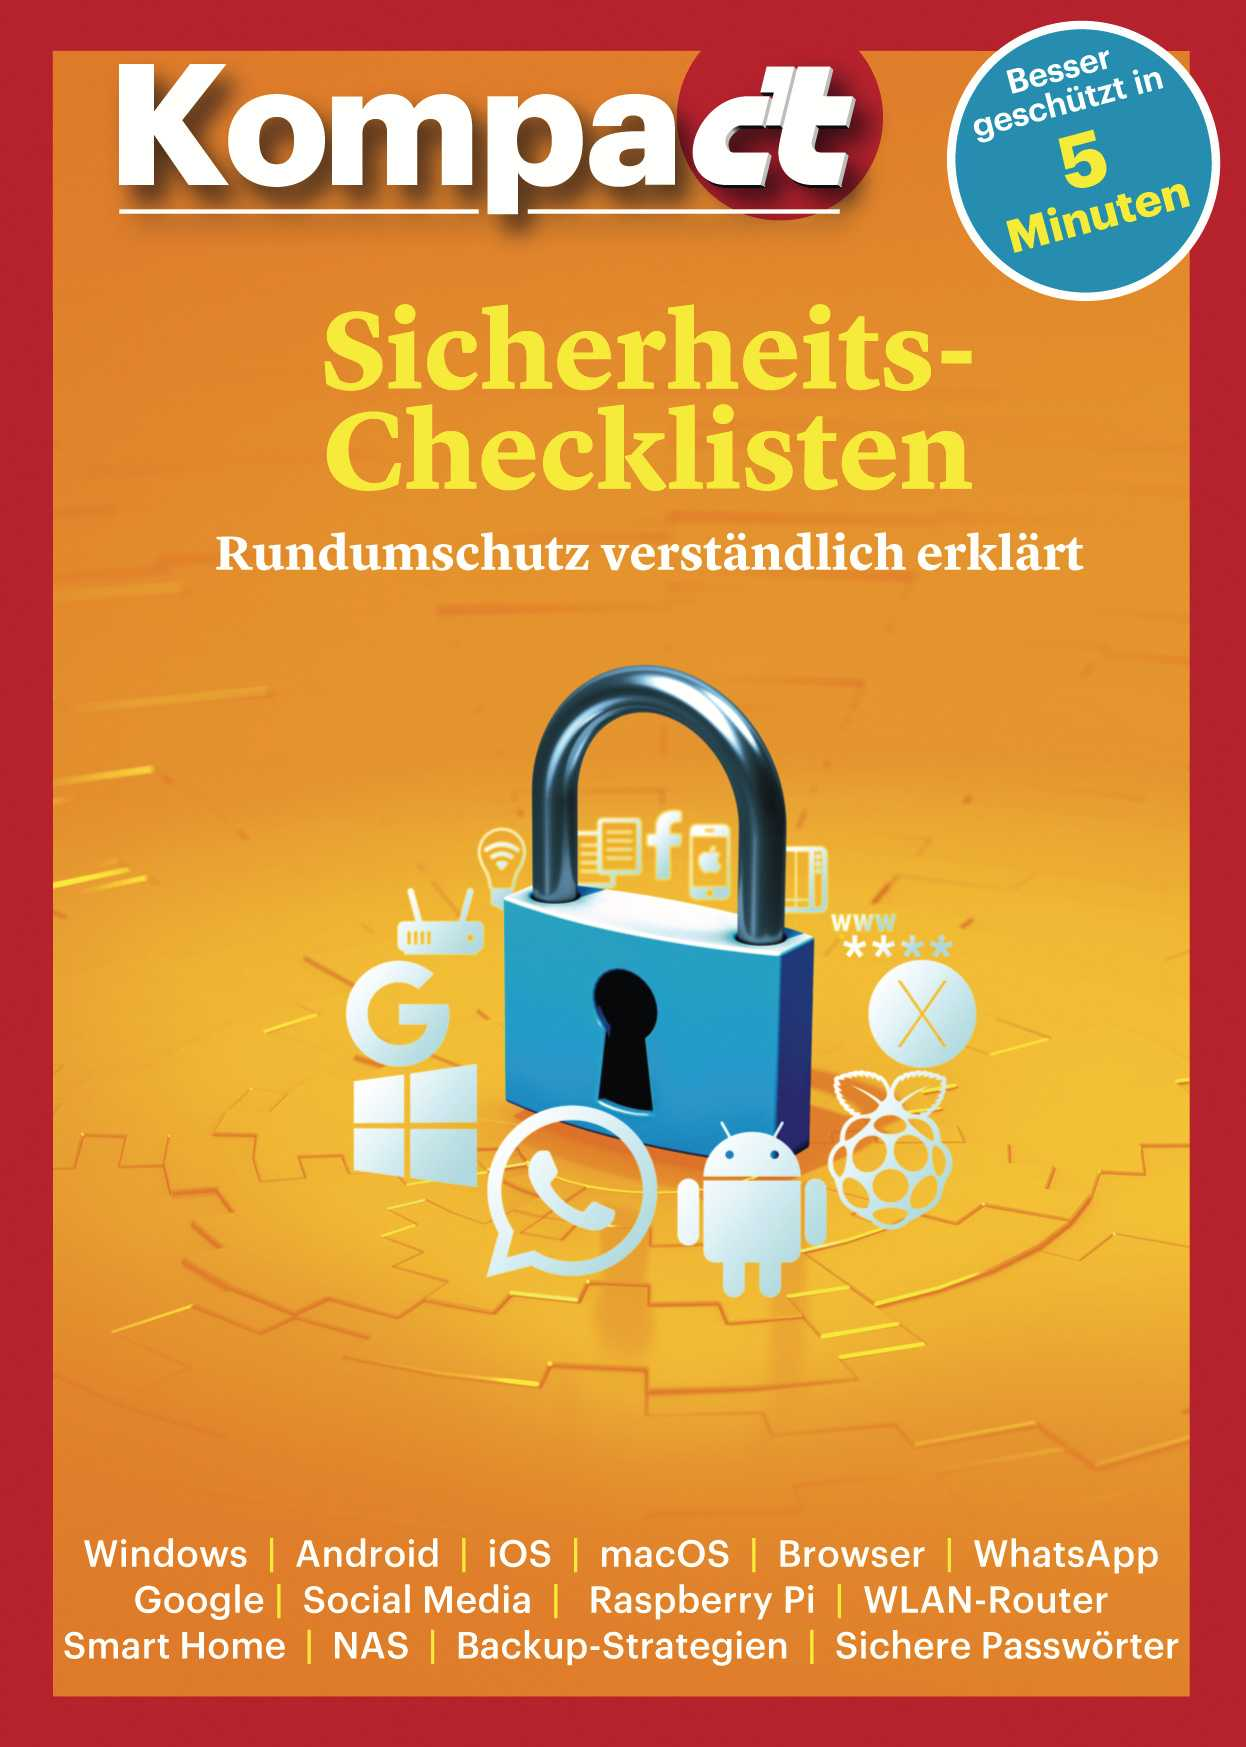 Download der Mini.Checklisten (PDF)